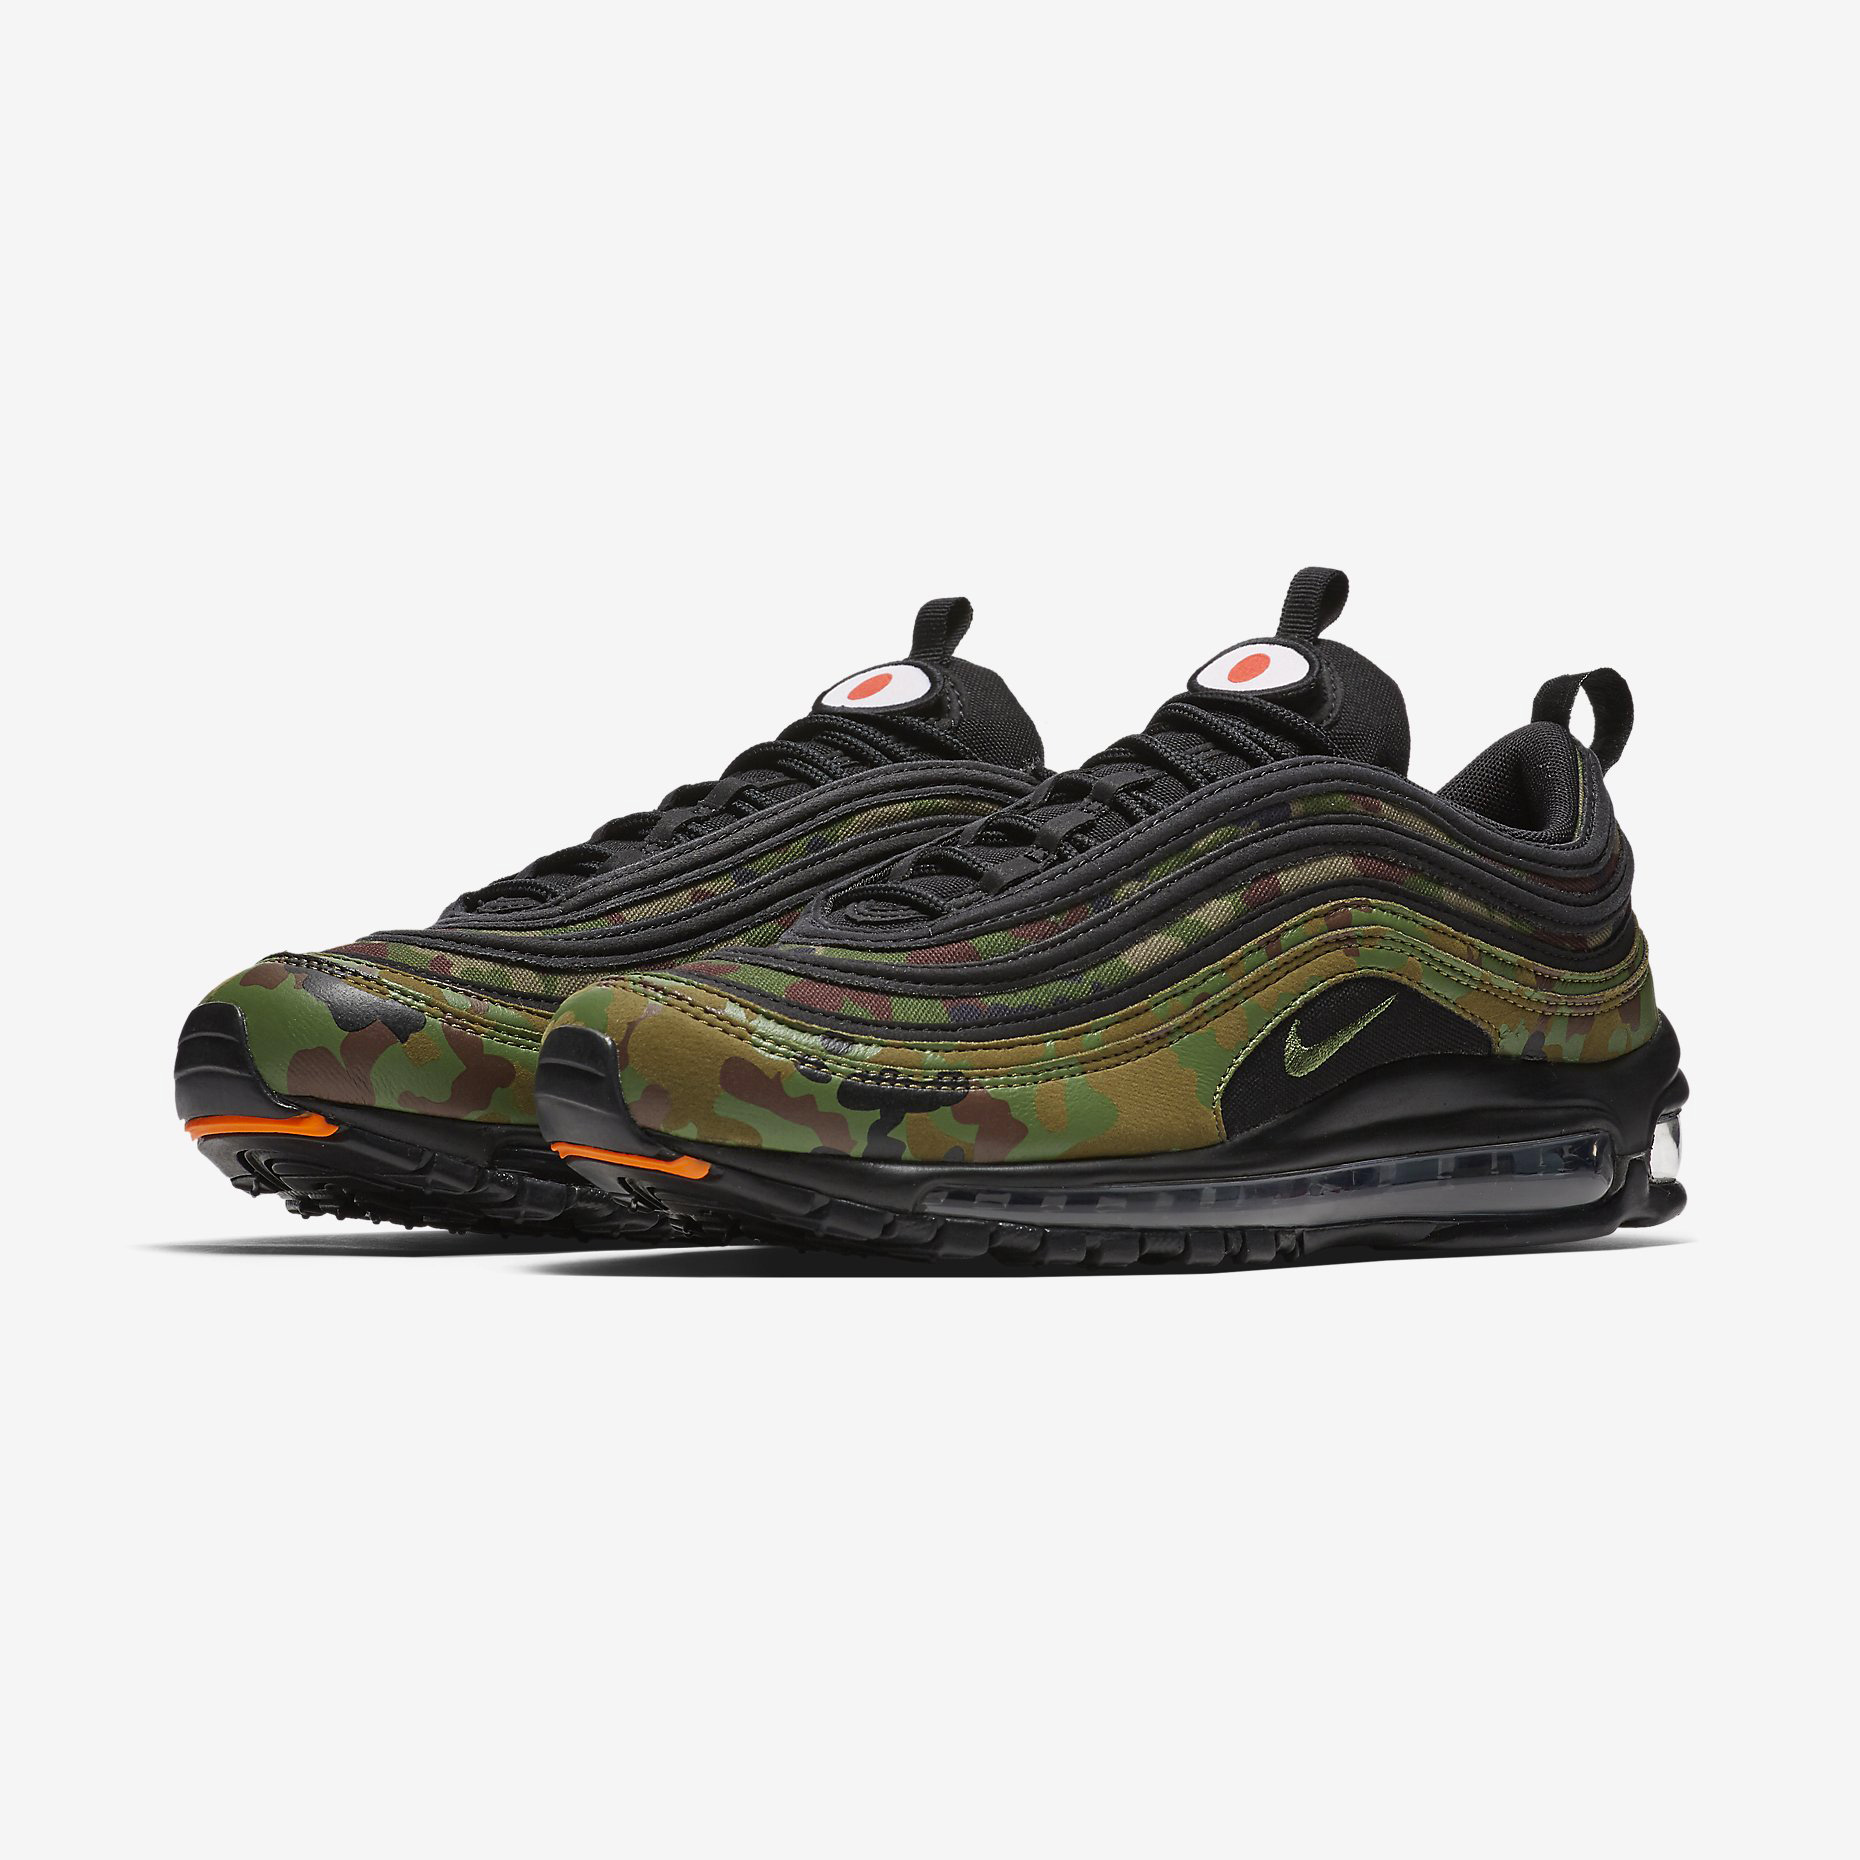 nike air max 97 pays camo japan pack